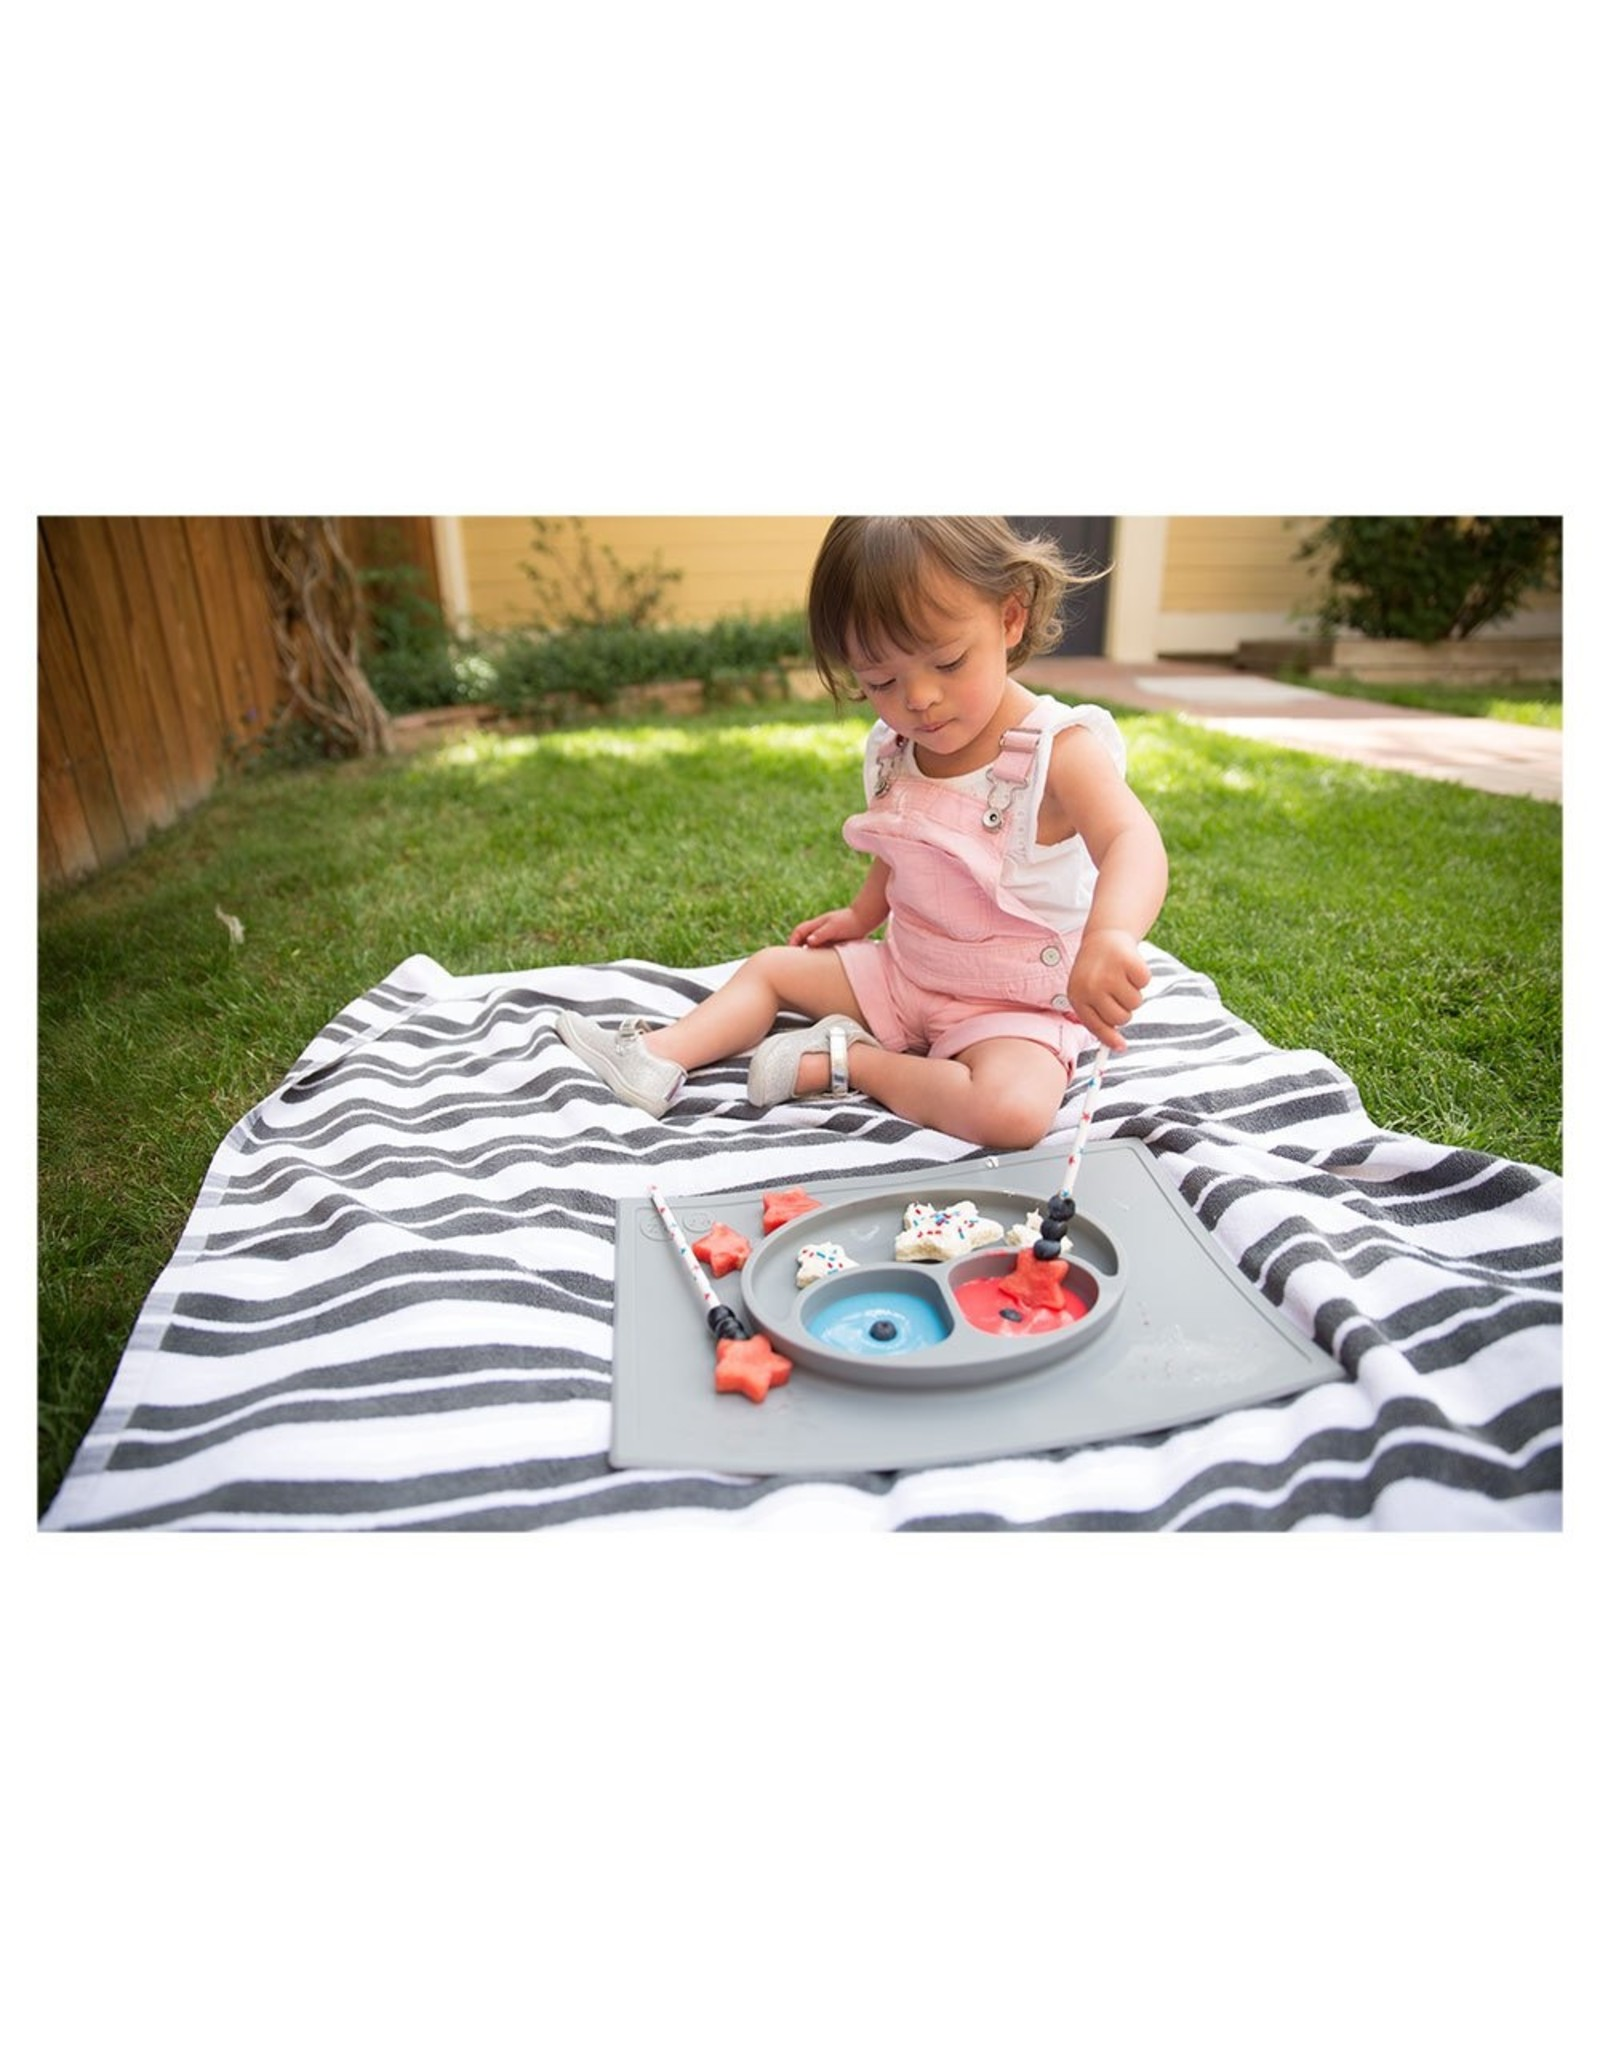 EZPZ Assiette / set de table anti dérapant - gris